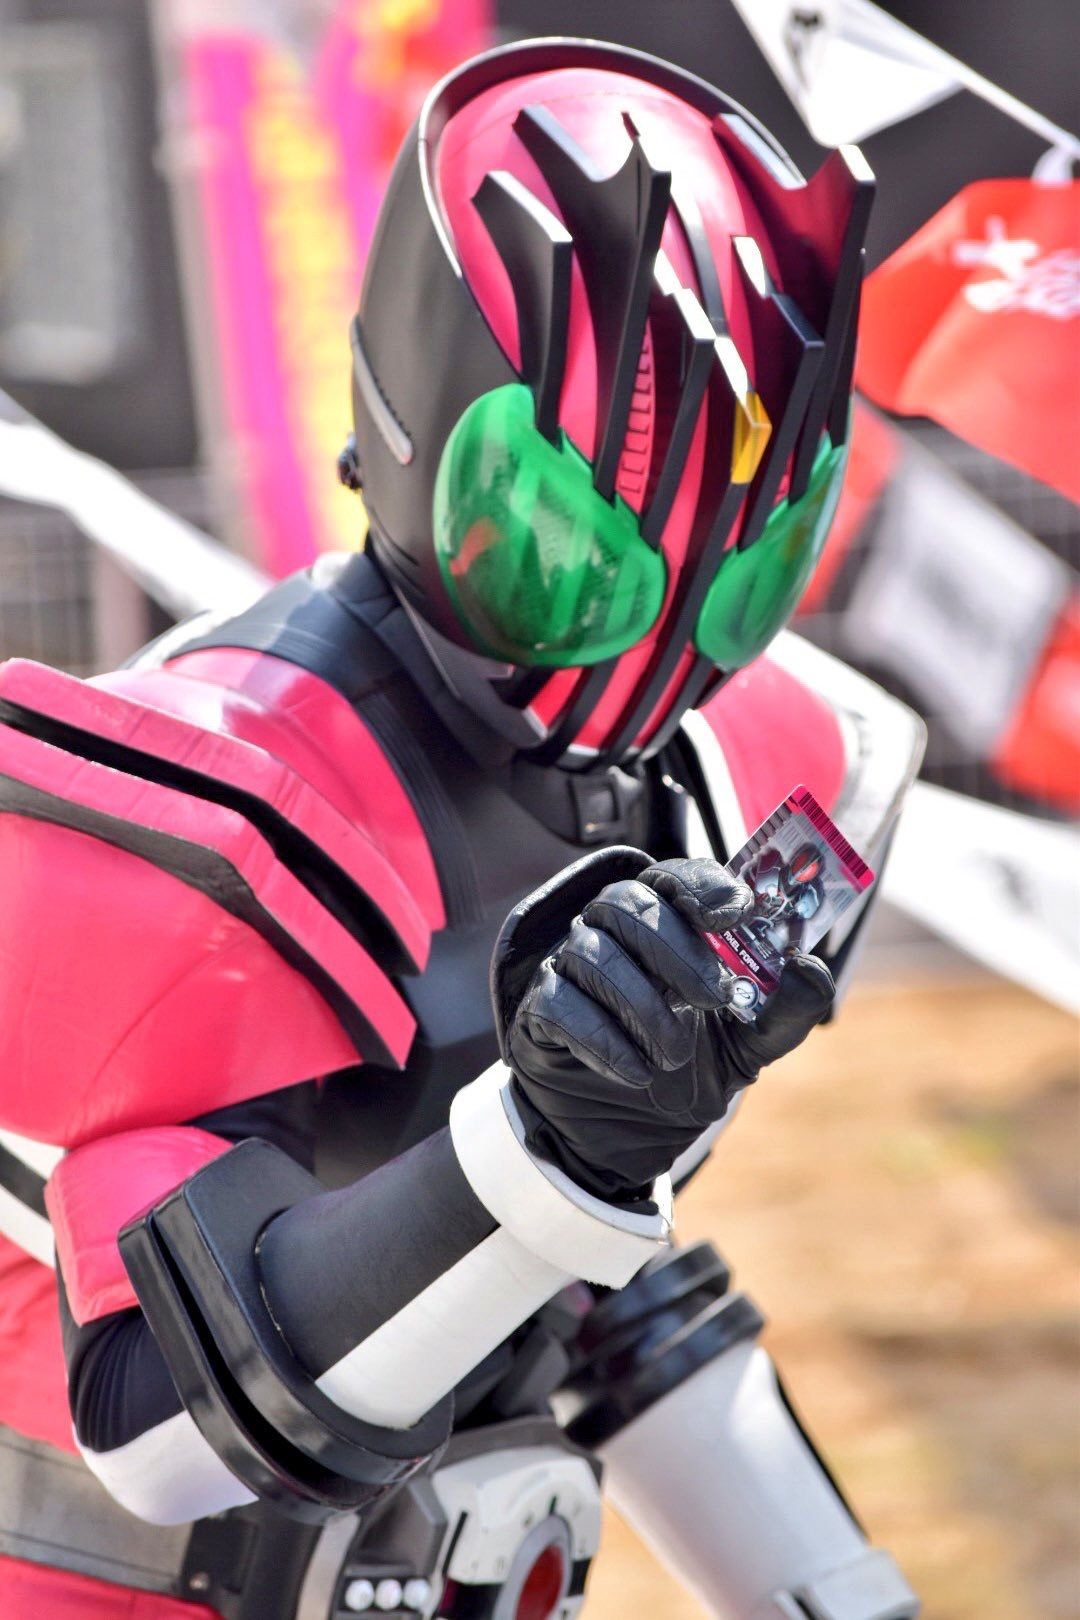 Photo from A15_photo on Twitter ライダー, 仮面ライダー, ヒーロー